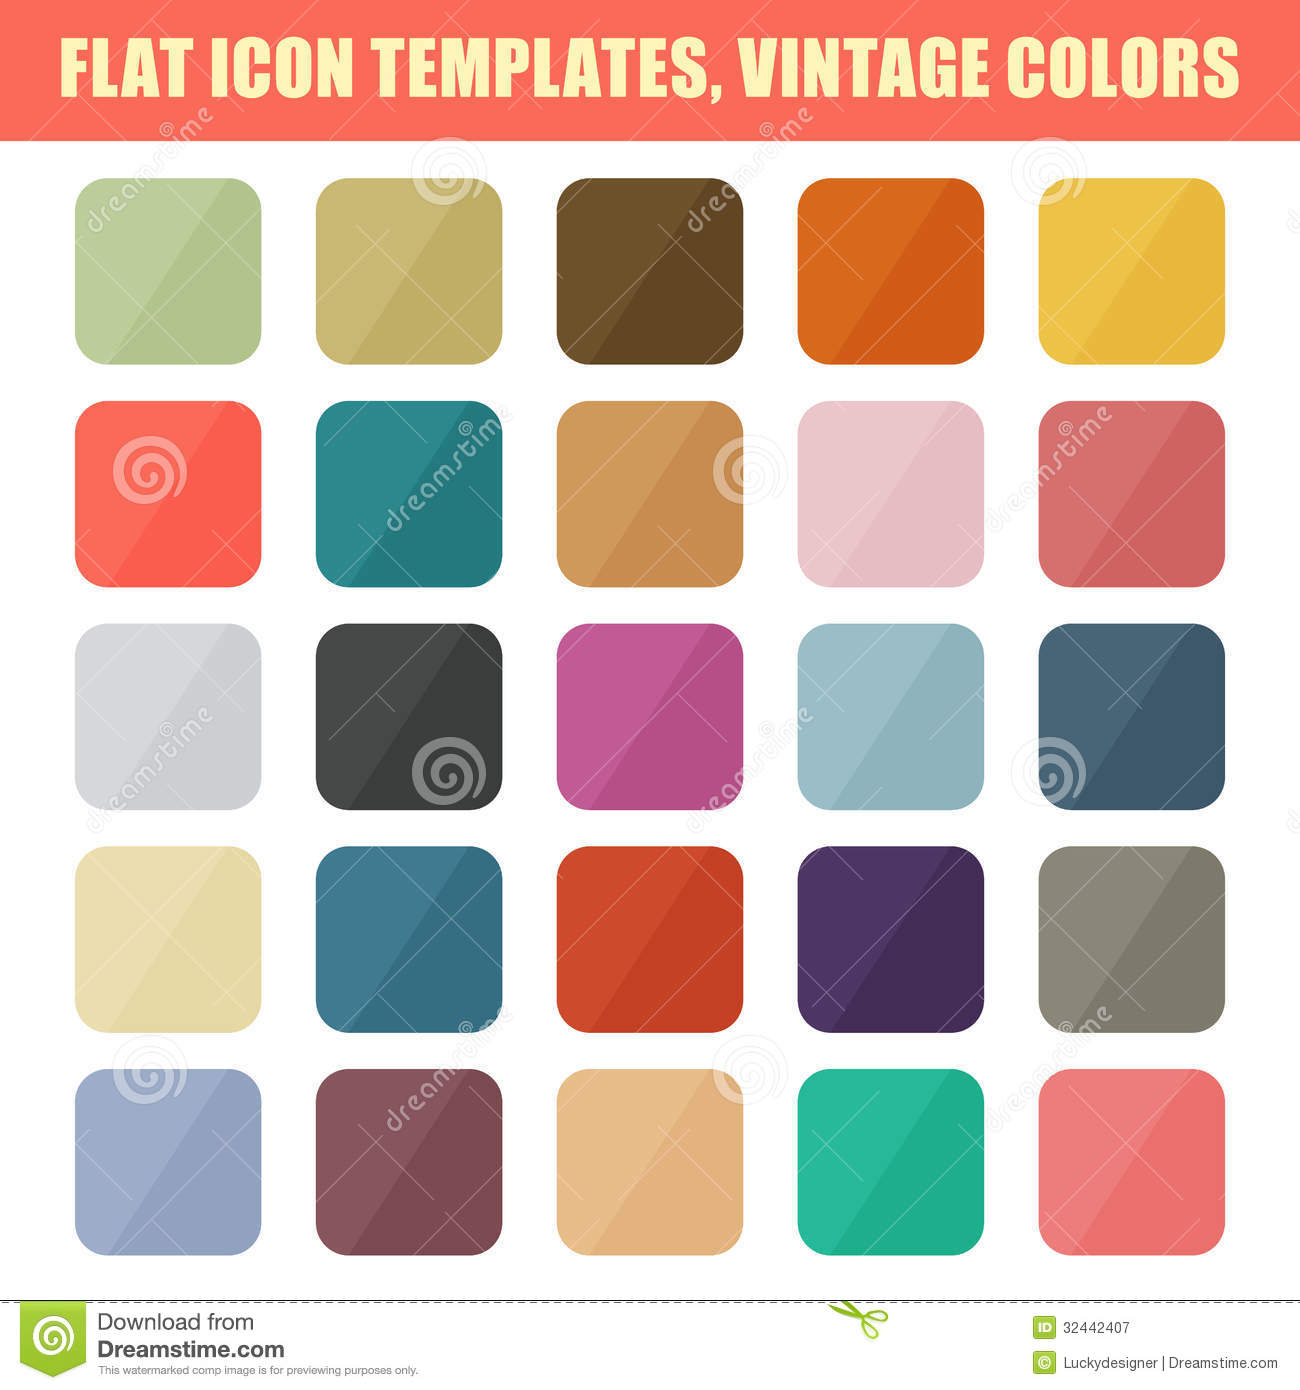 set of flat app icon templates, backgrounds. vintage palette